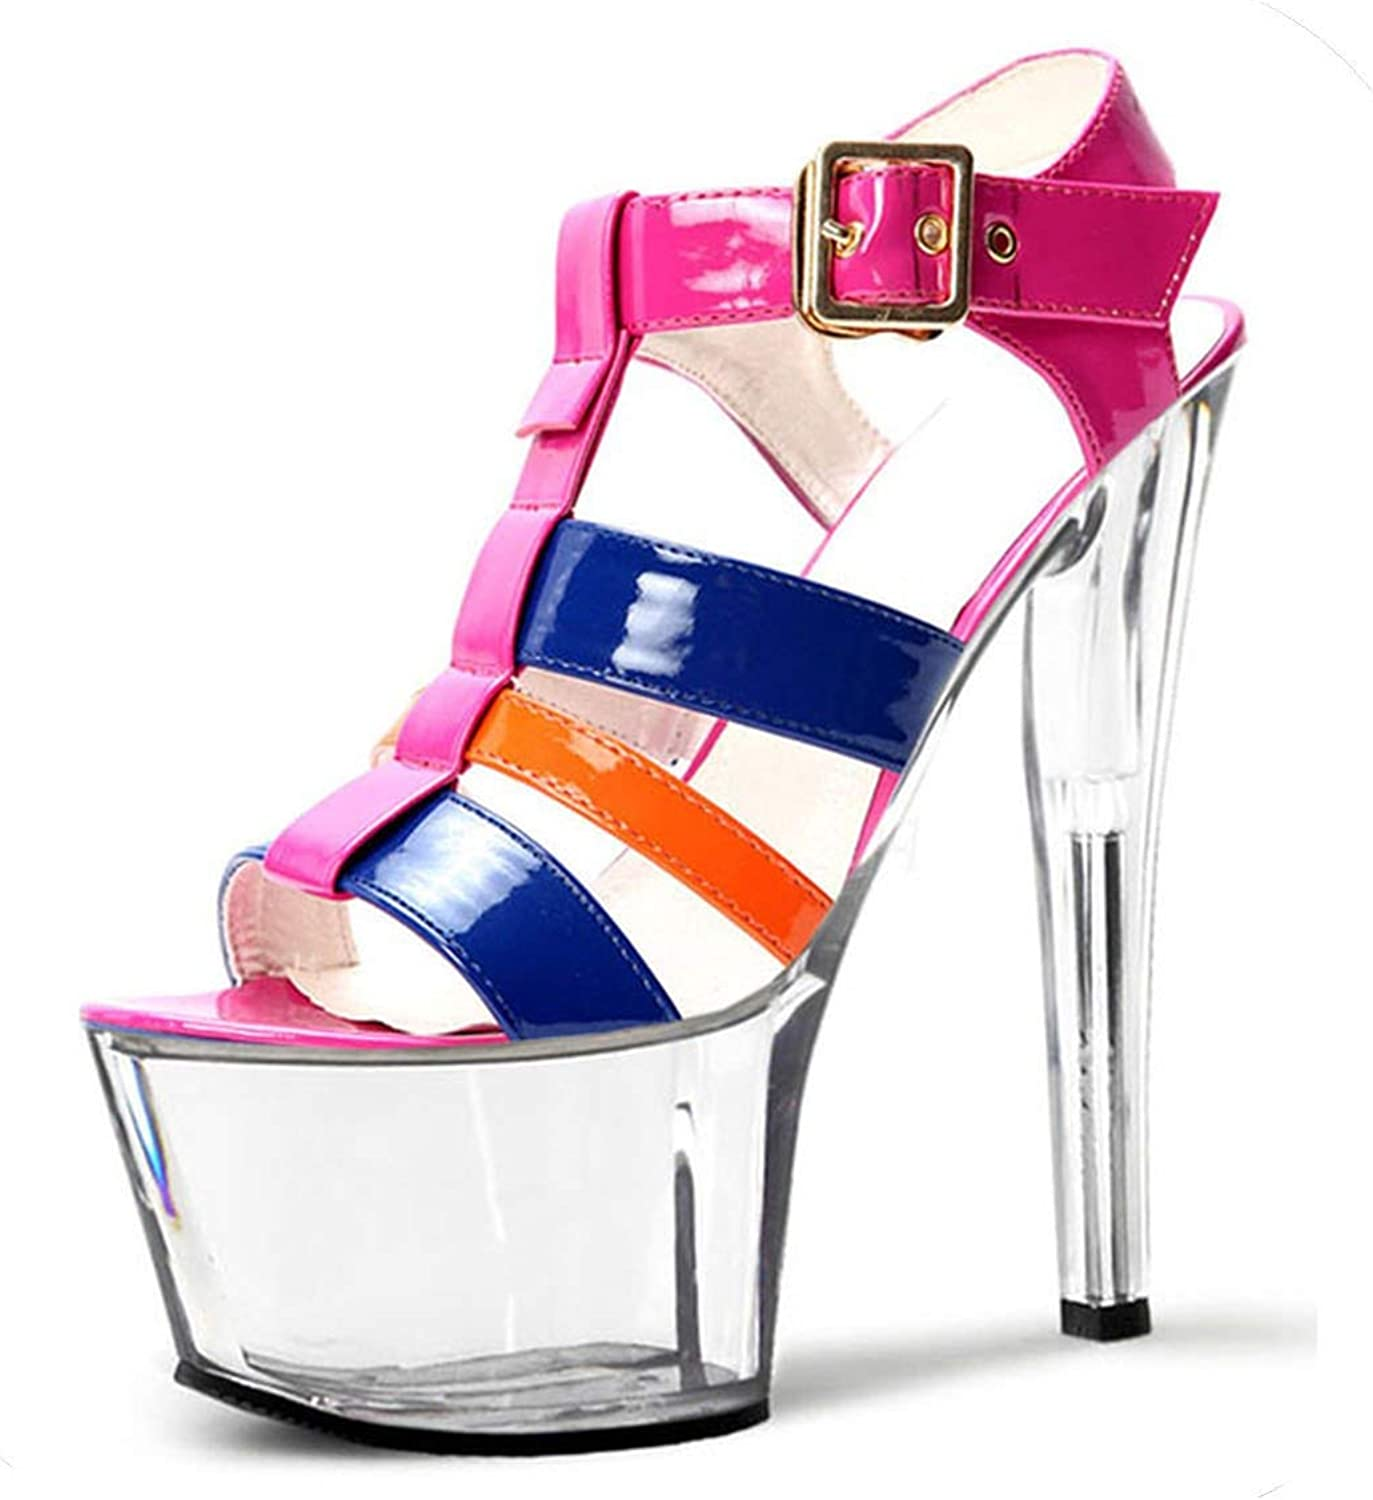 Beauty-inside color Stage Size and Sandals,15 cm, Heel high shoes, Transparent Waterproof Platform